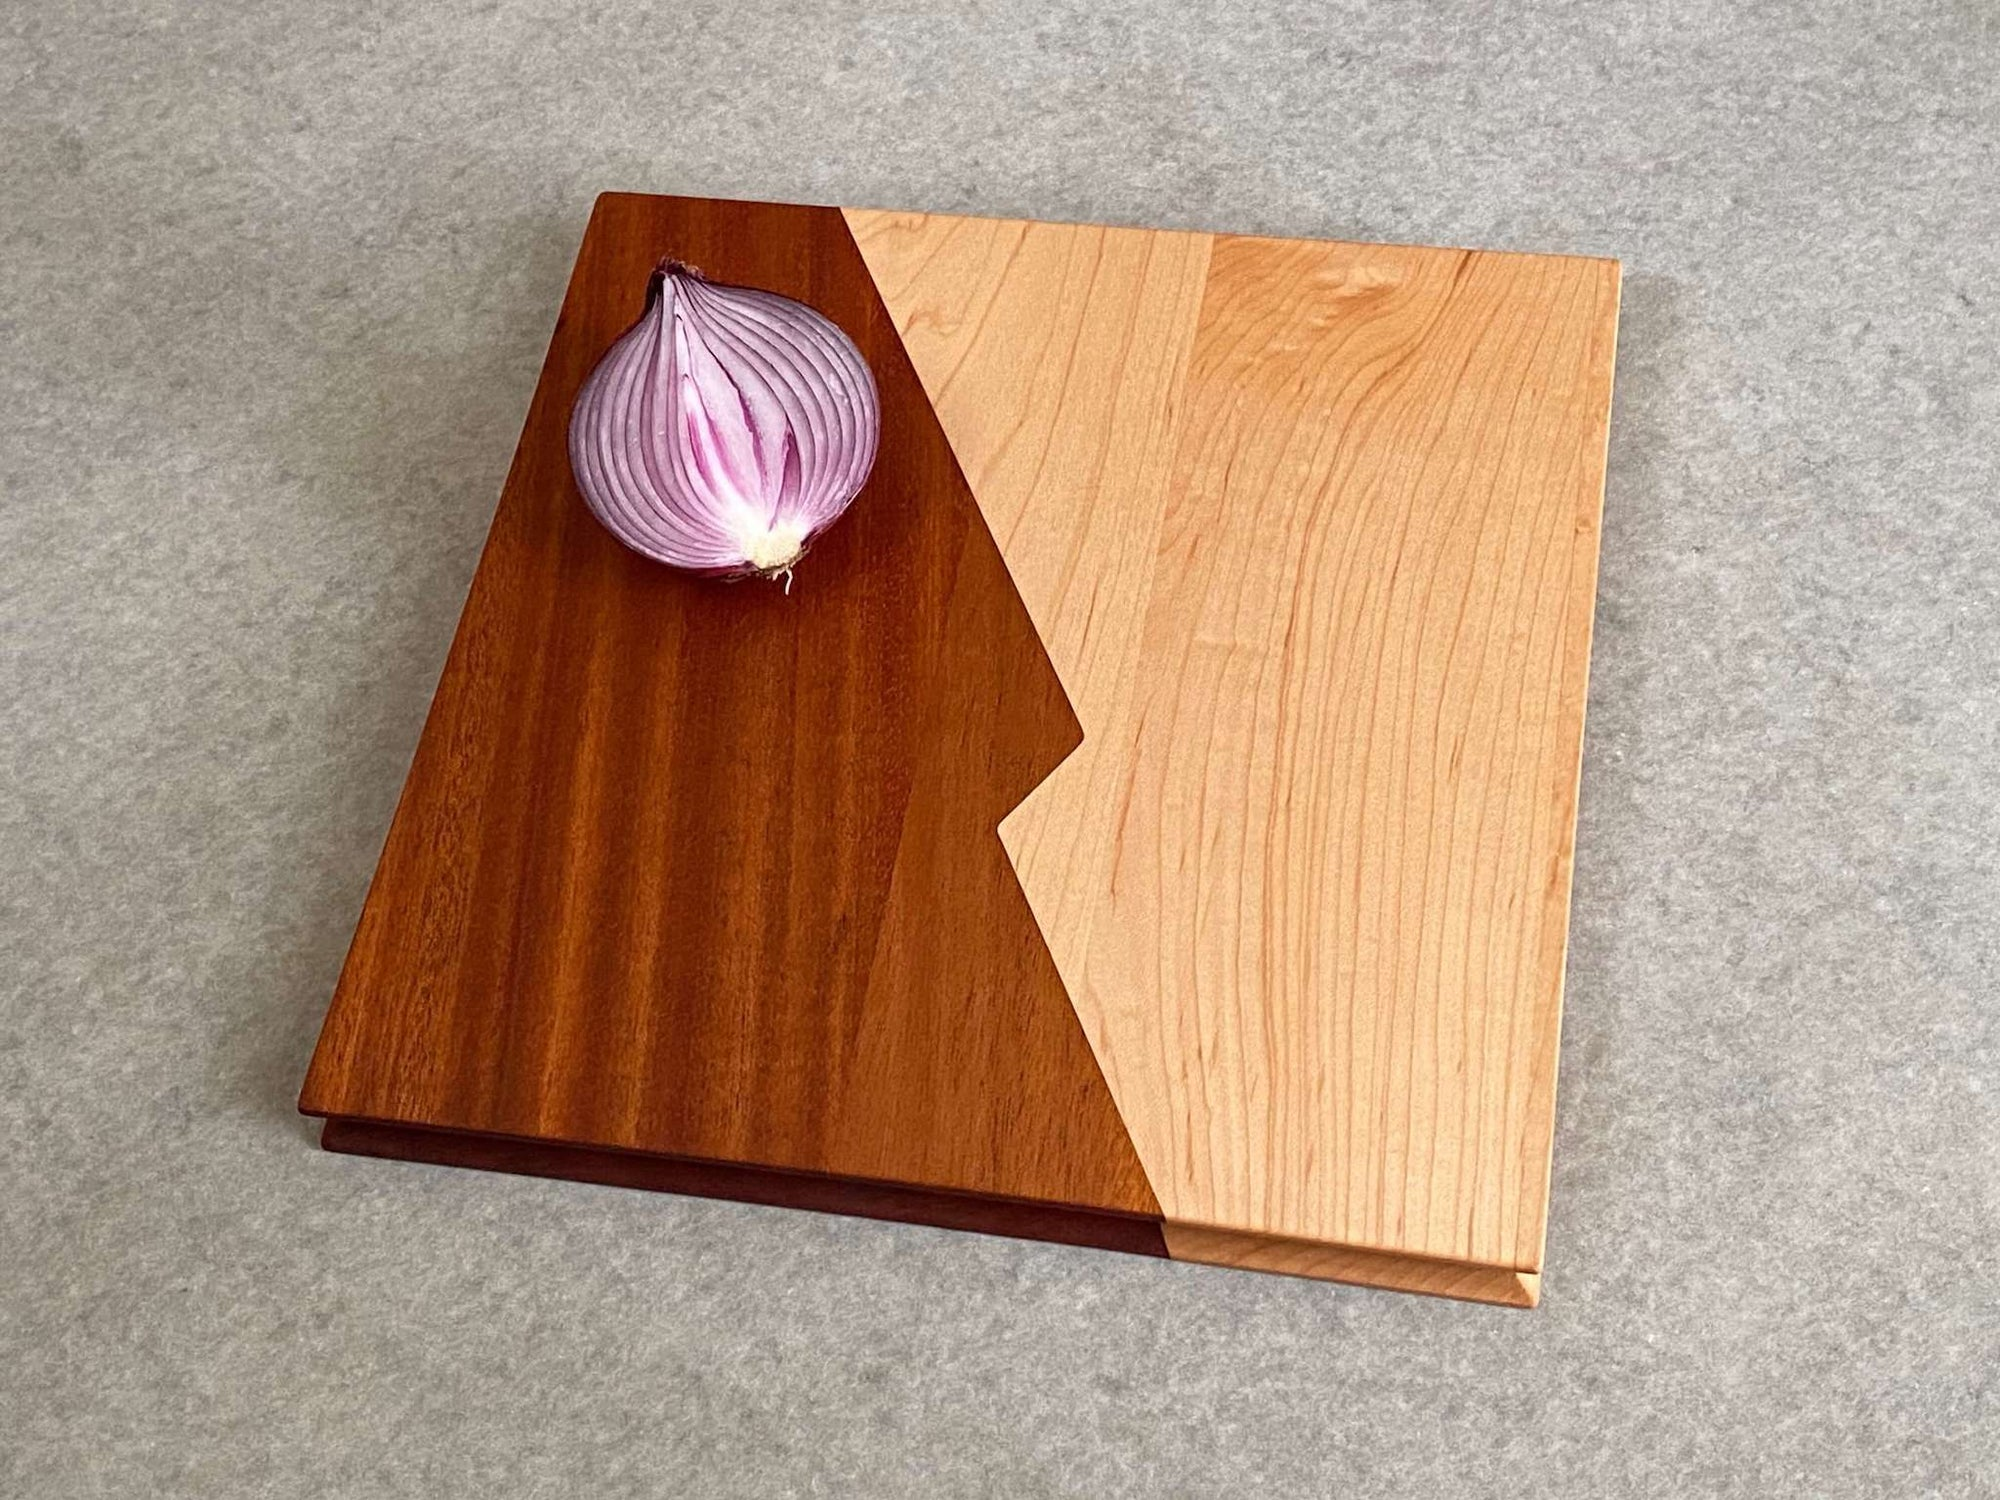 A square cutting and serving board that is half maple and half mahogany with a zigzag center joint. Sculpted edges provide comfortable fingerholds.